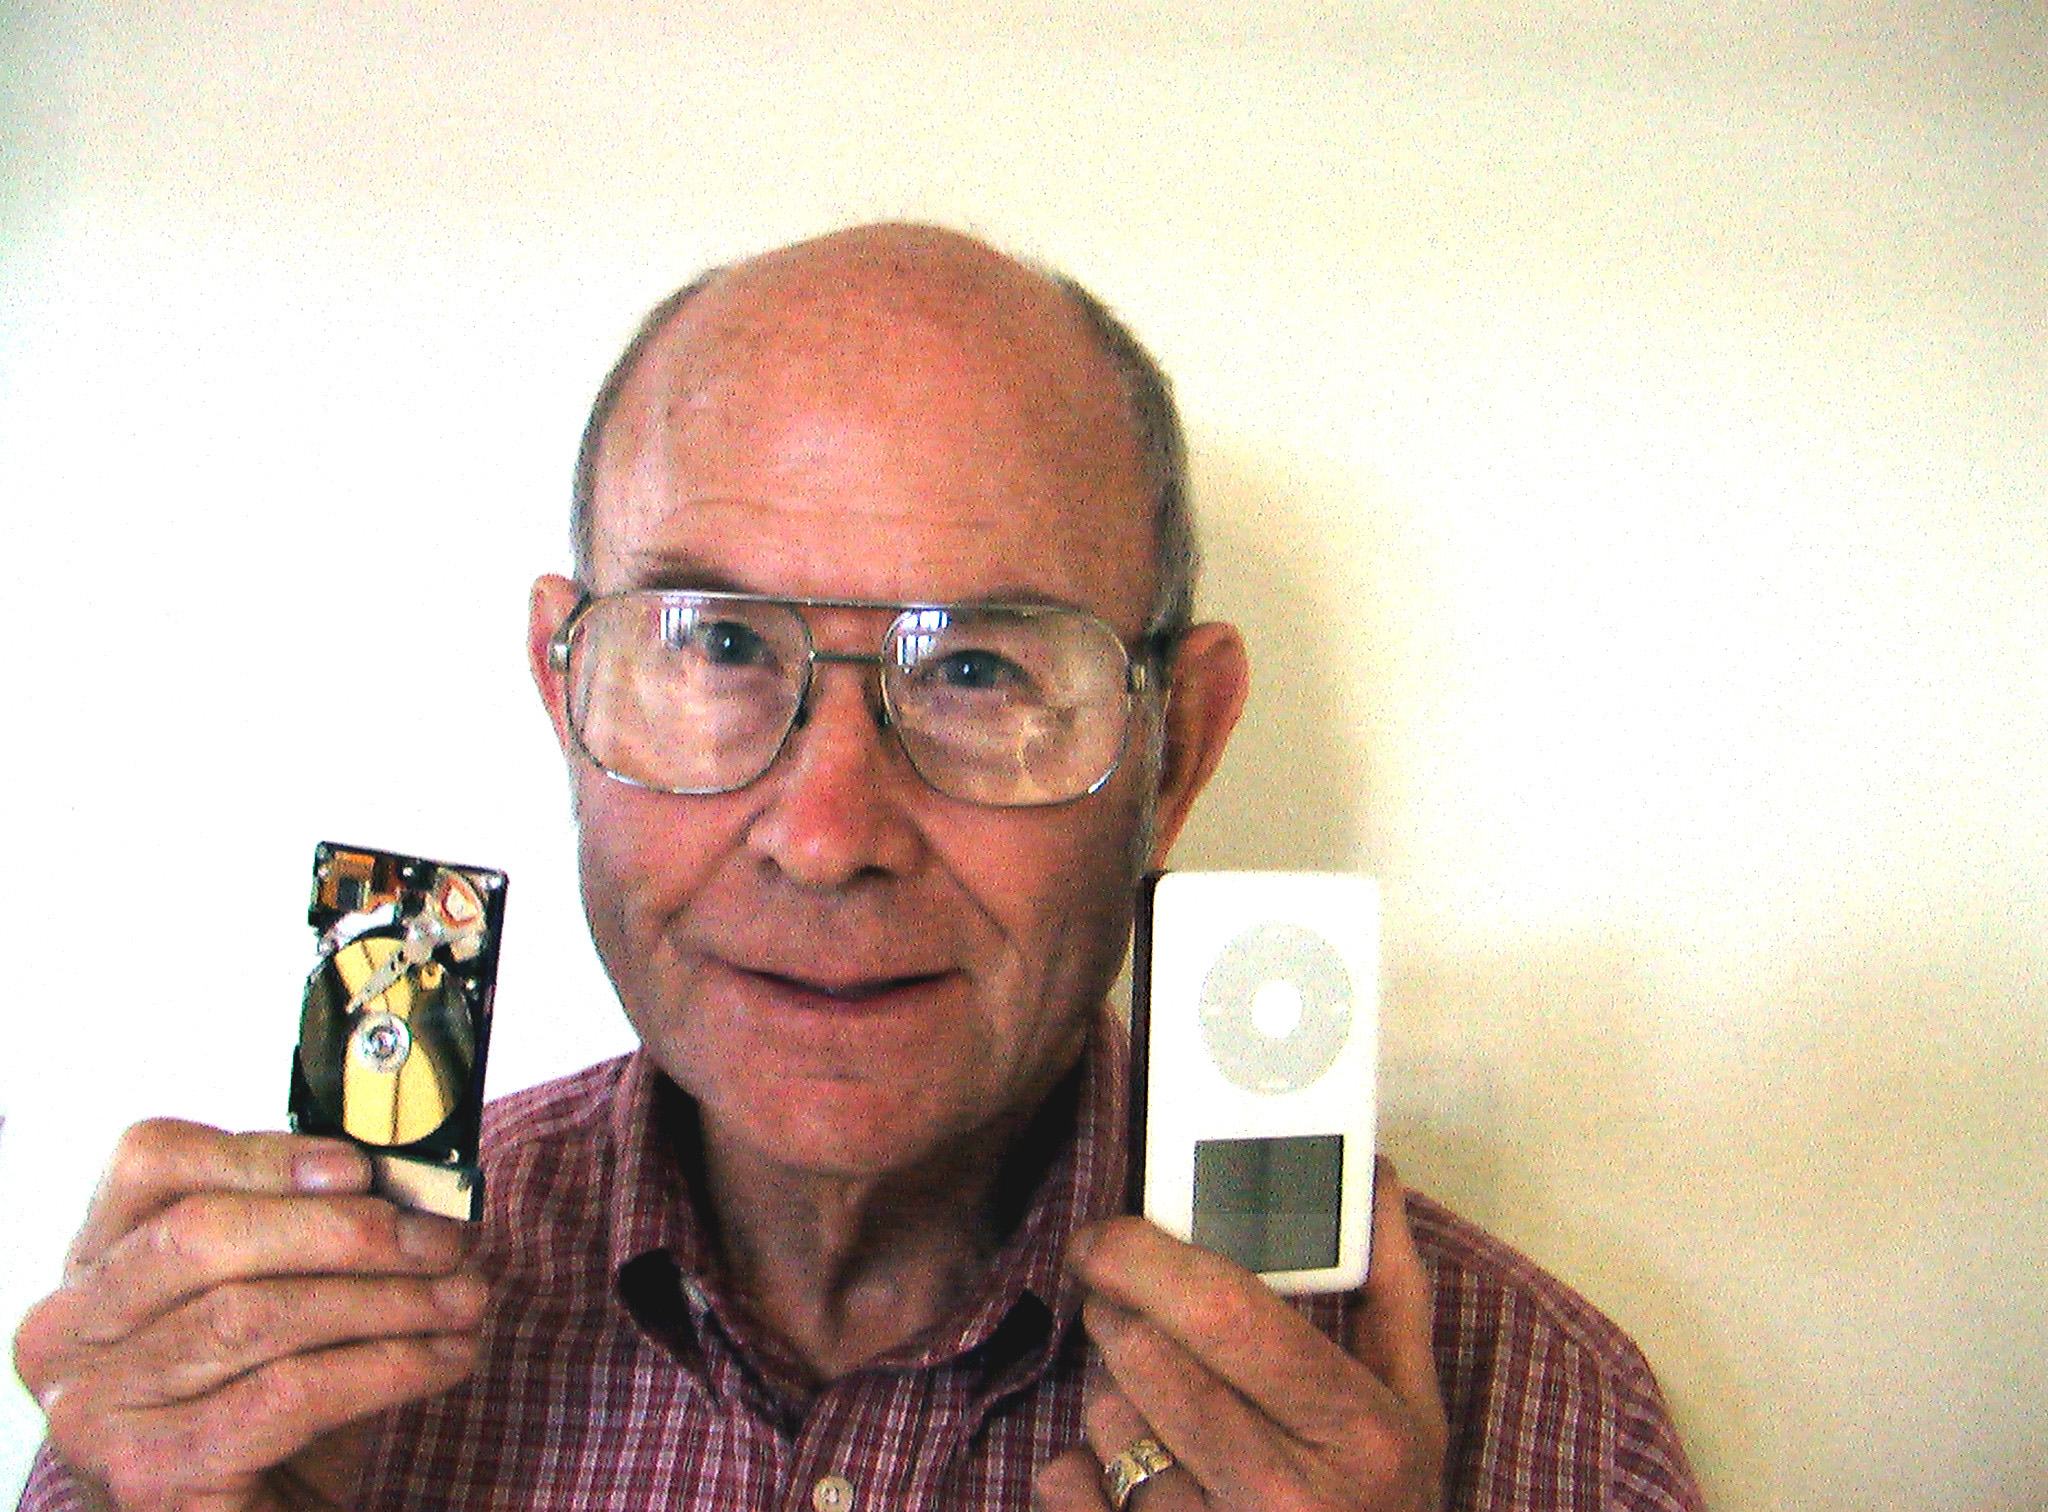 Author holding an iPod hard drive.